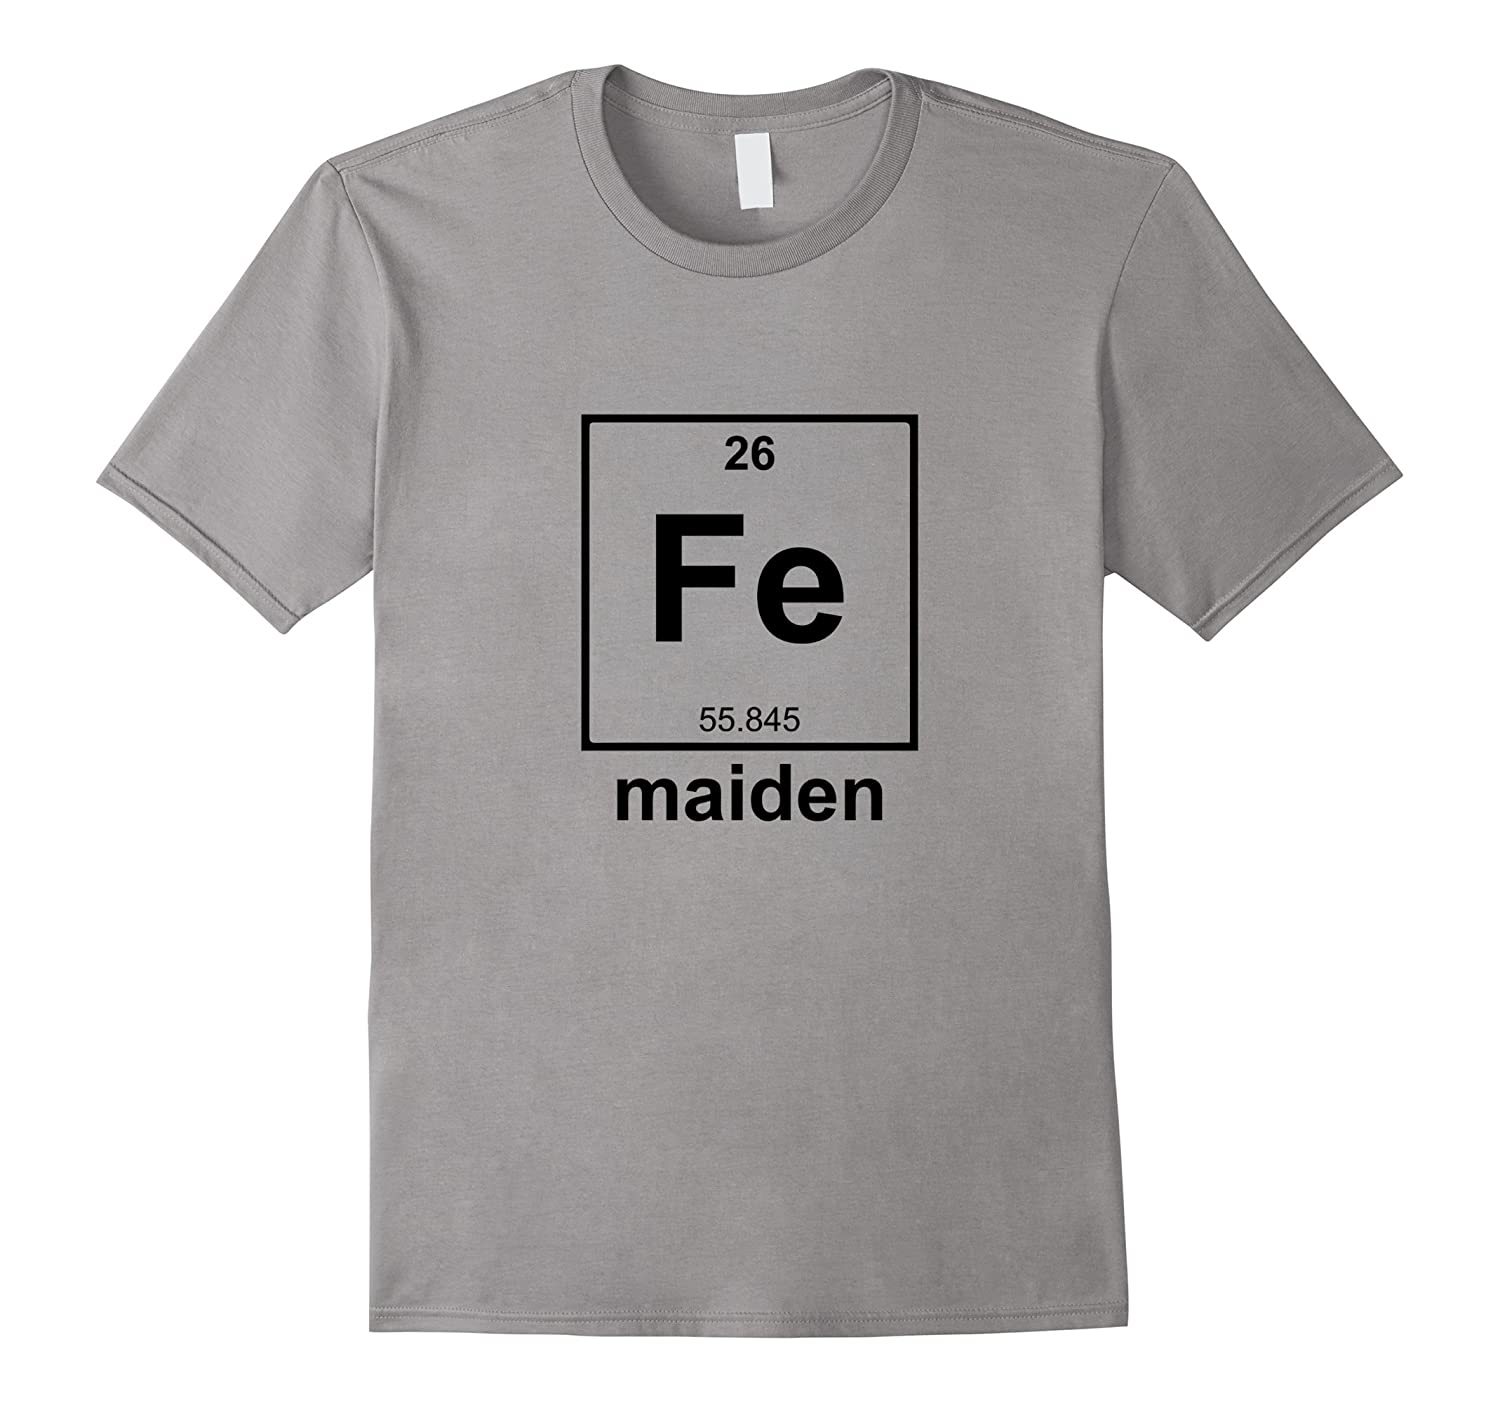 Iron M Periodic Table Element T Shirt 2016 Cl Colamaga